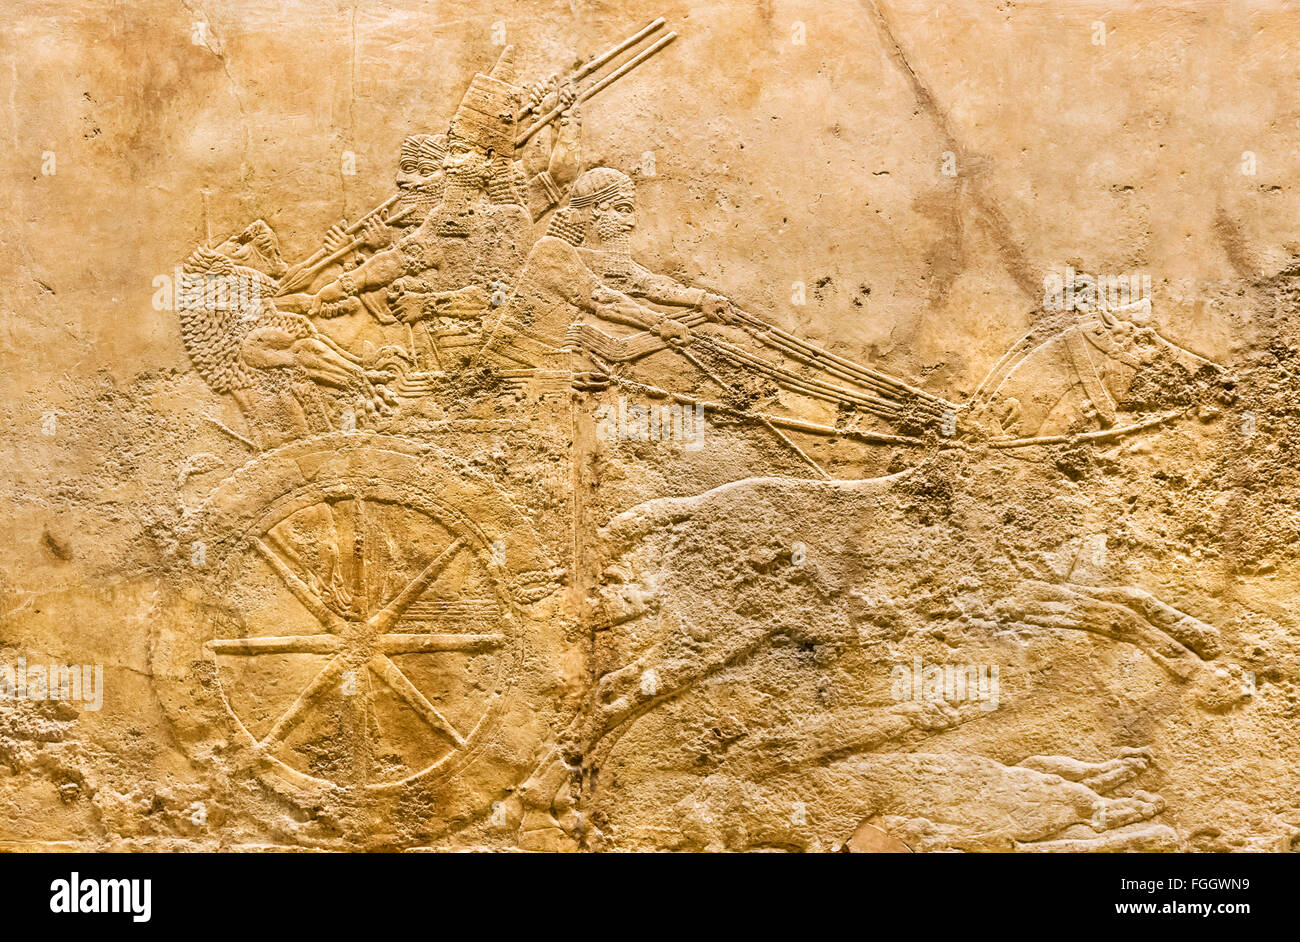 King Ashurbanipal in chariot, Lion hunt reliefs c.645-635 BC from palace in Ninevah, Assyrian Gallery, British Museum, - Stock Image